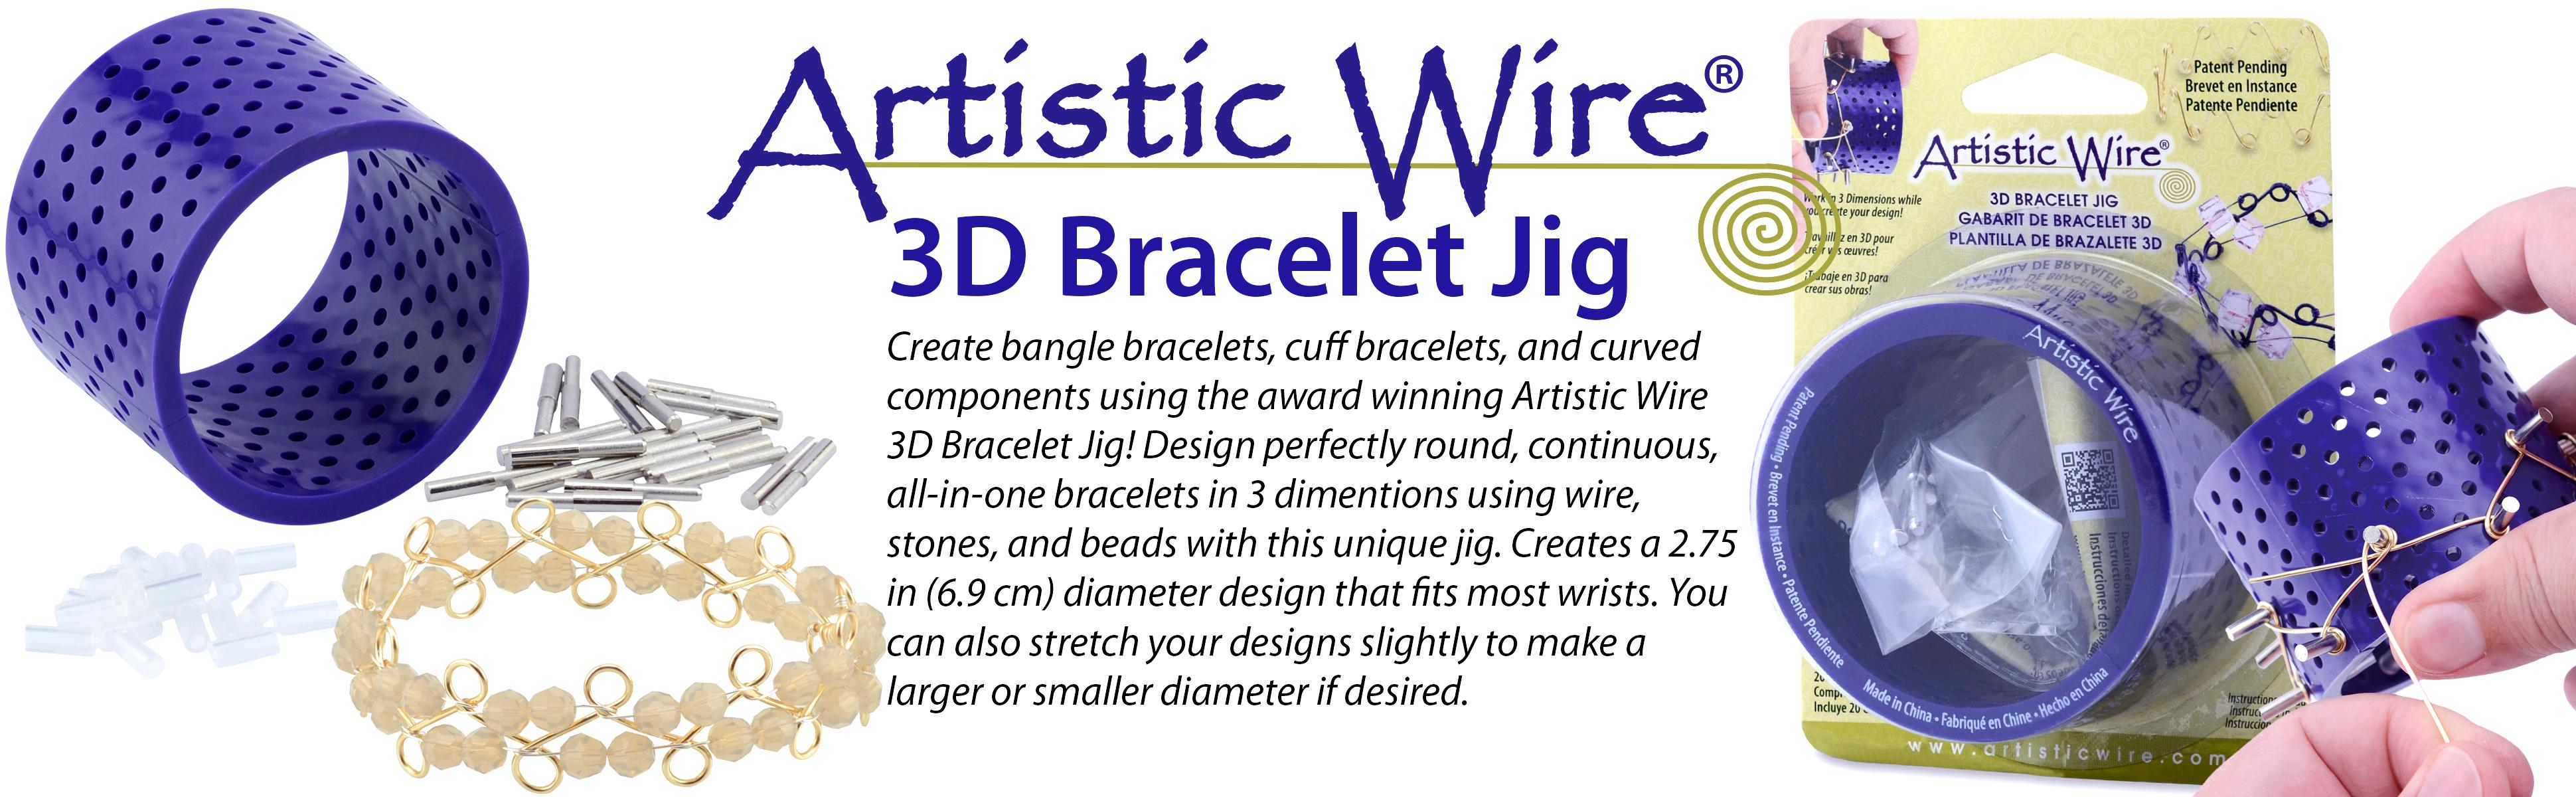 Amazon.com: Artistic Wire 3D Bracelet Jig with 20 Pegs, and Holder Tubes